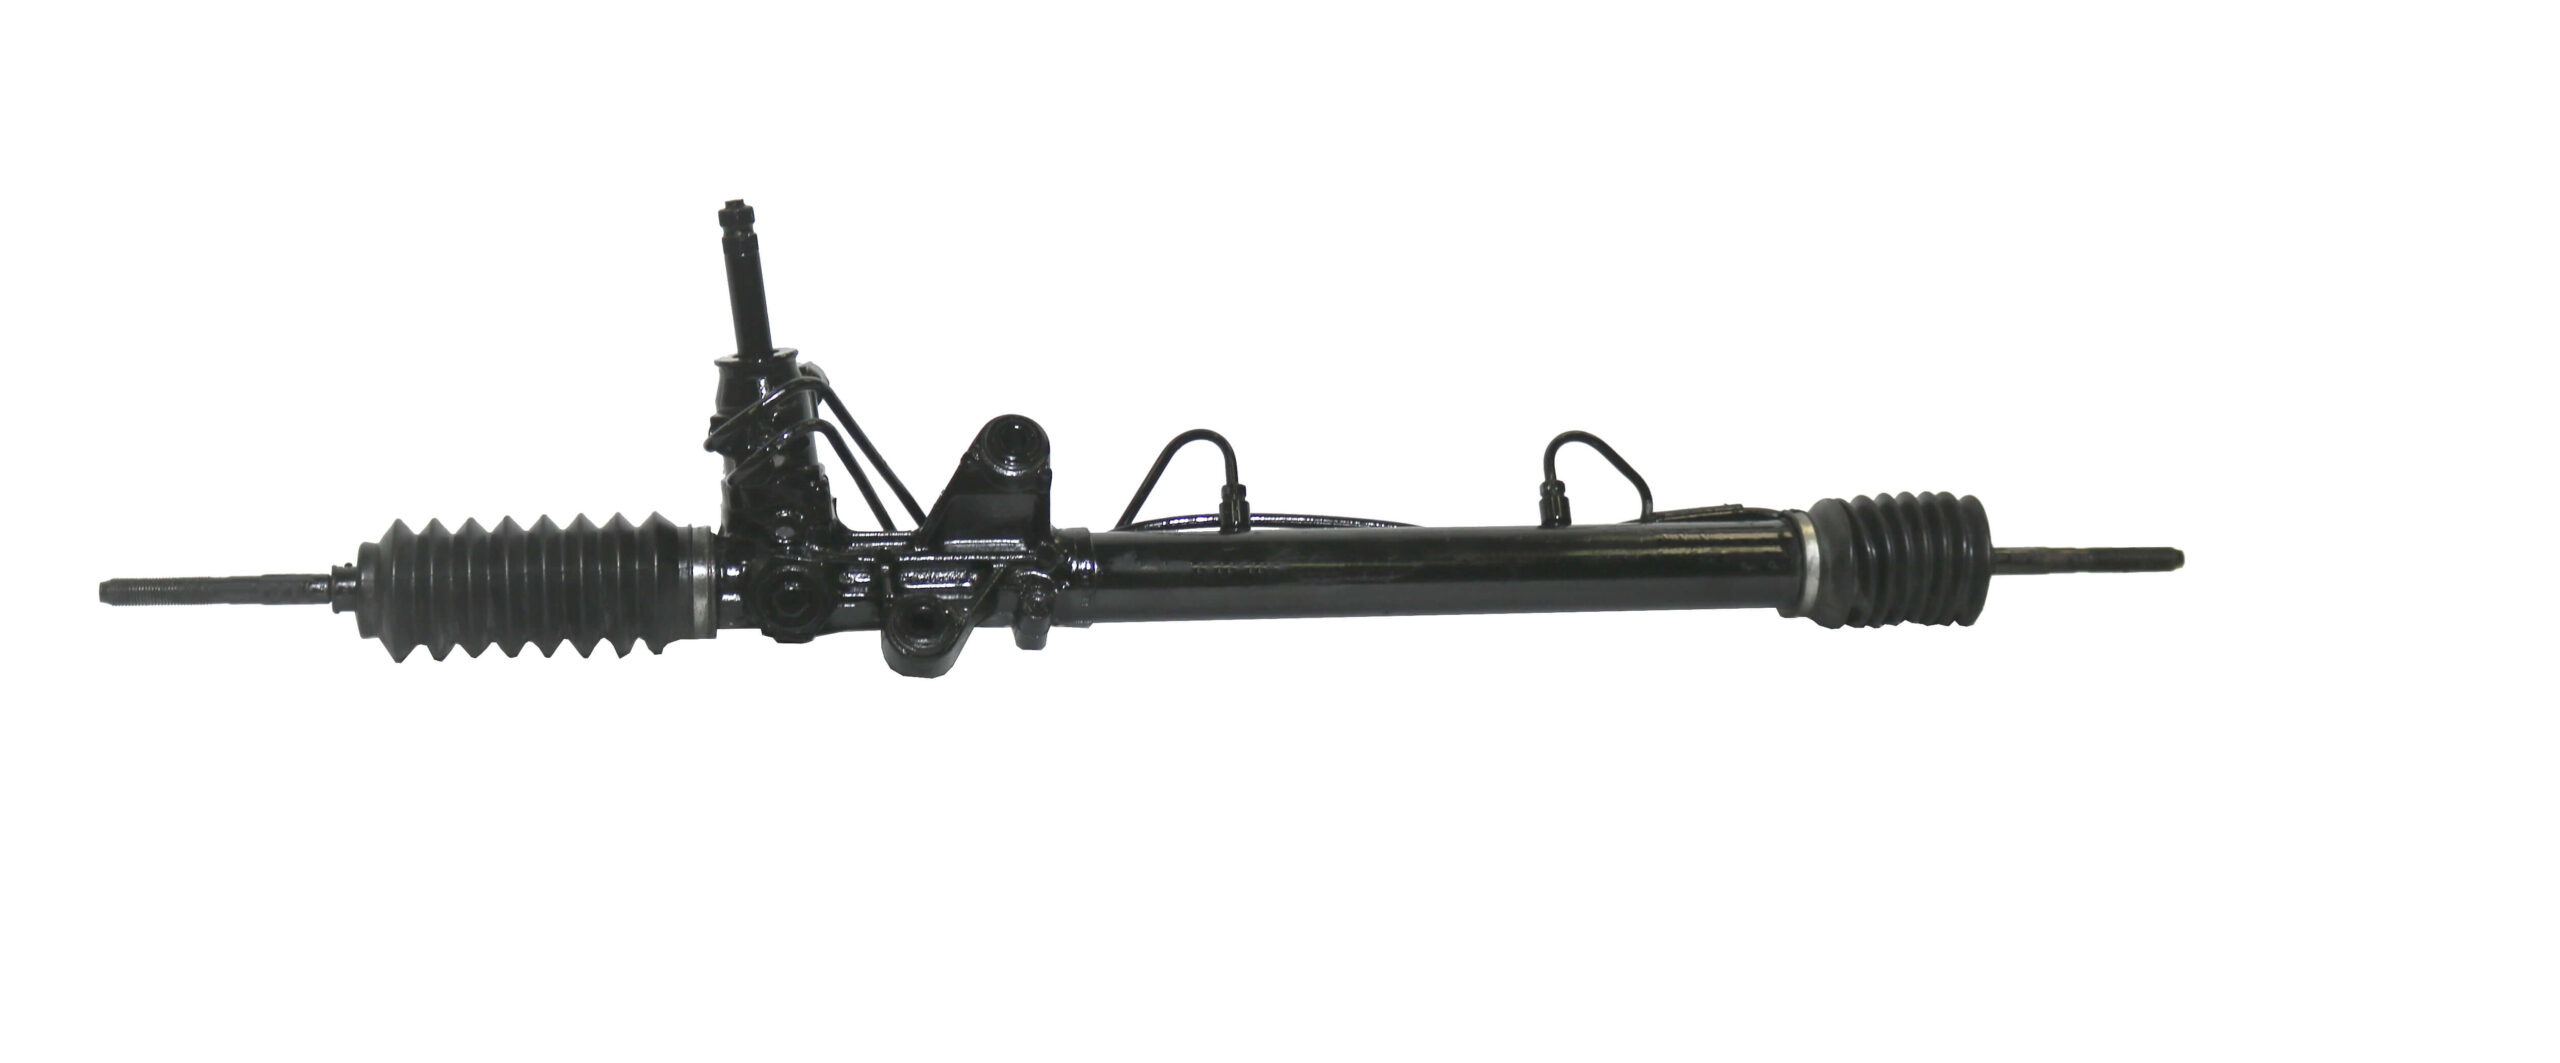 Hydrolic rack and pinion power steering gear for Acura Integra.